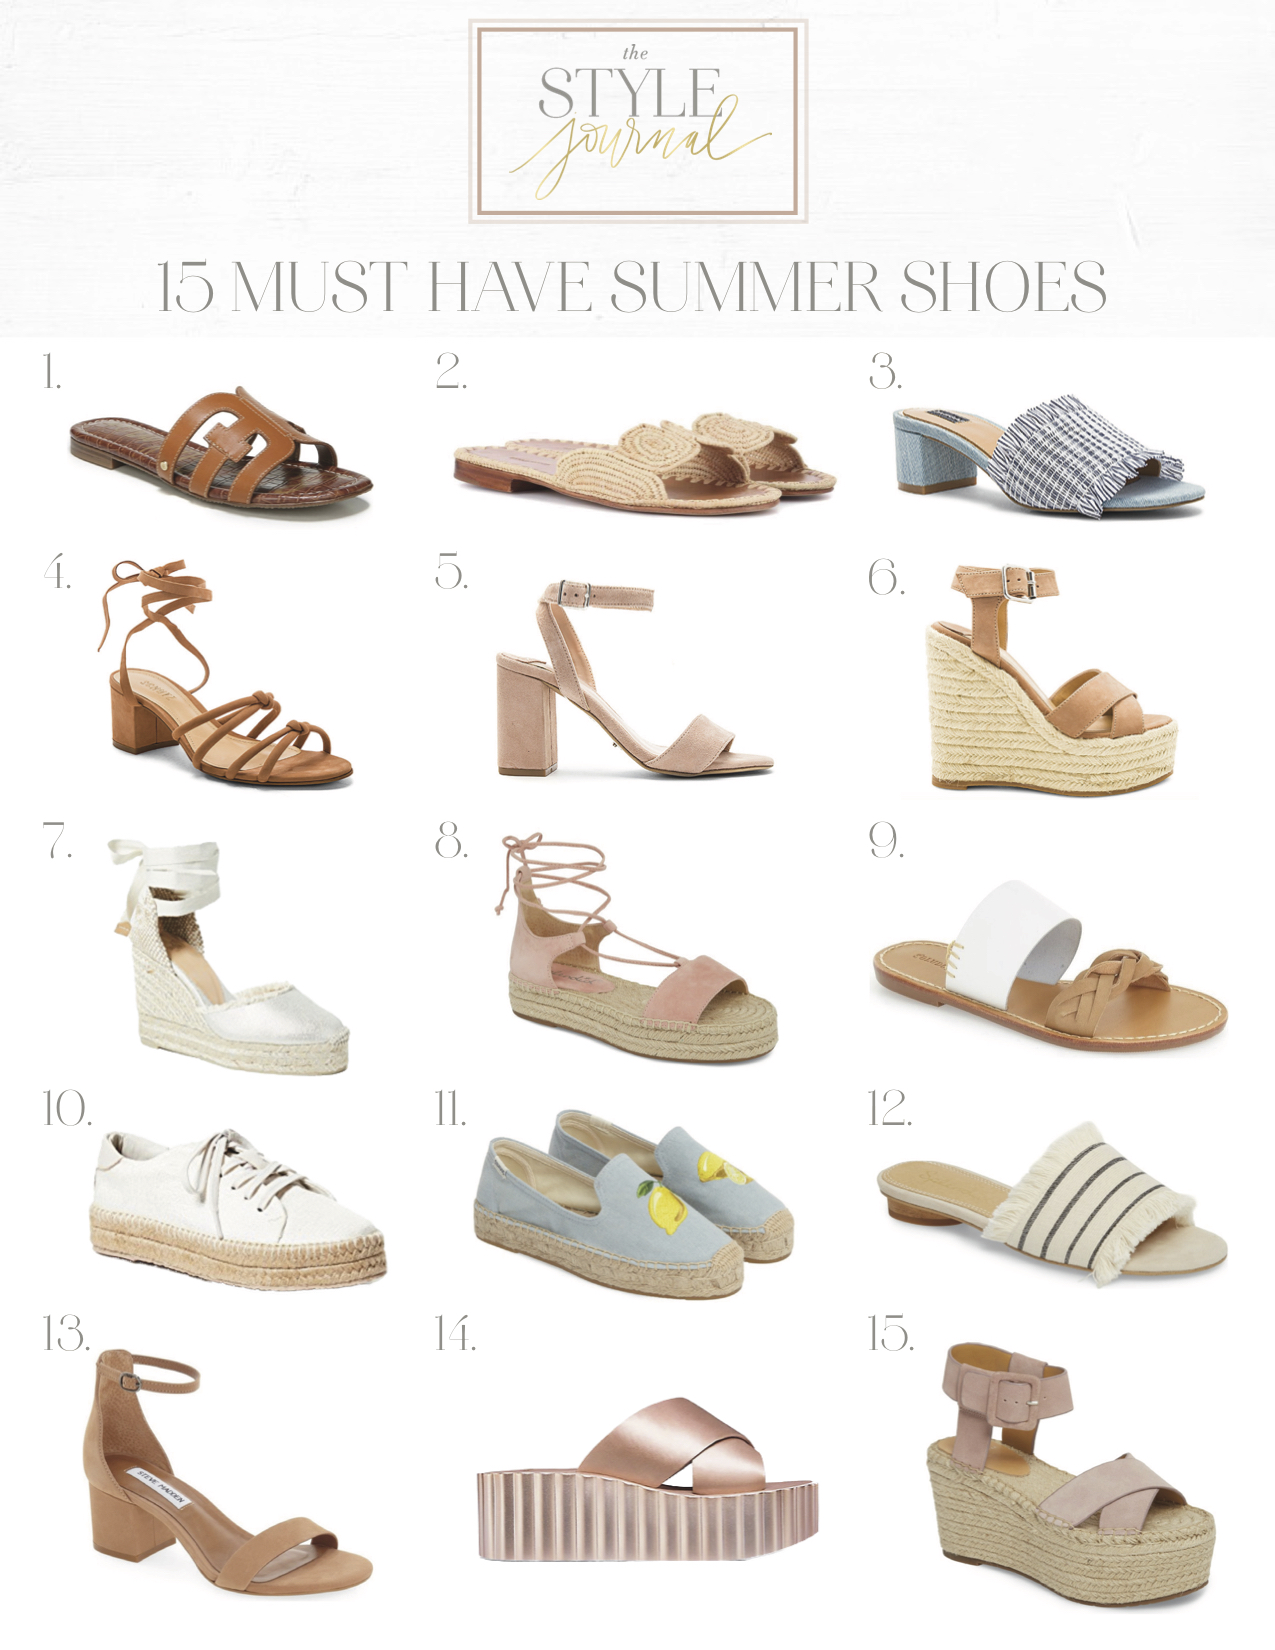 15 must have summer shoes .jpg